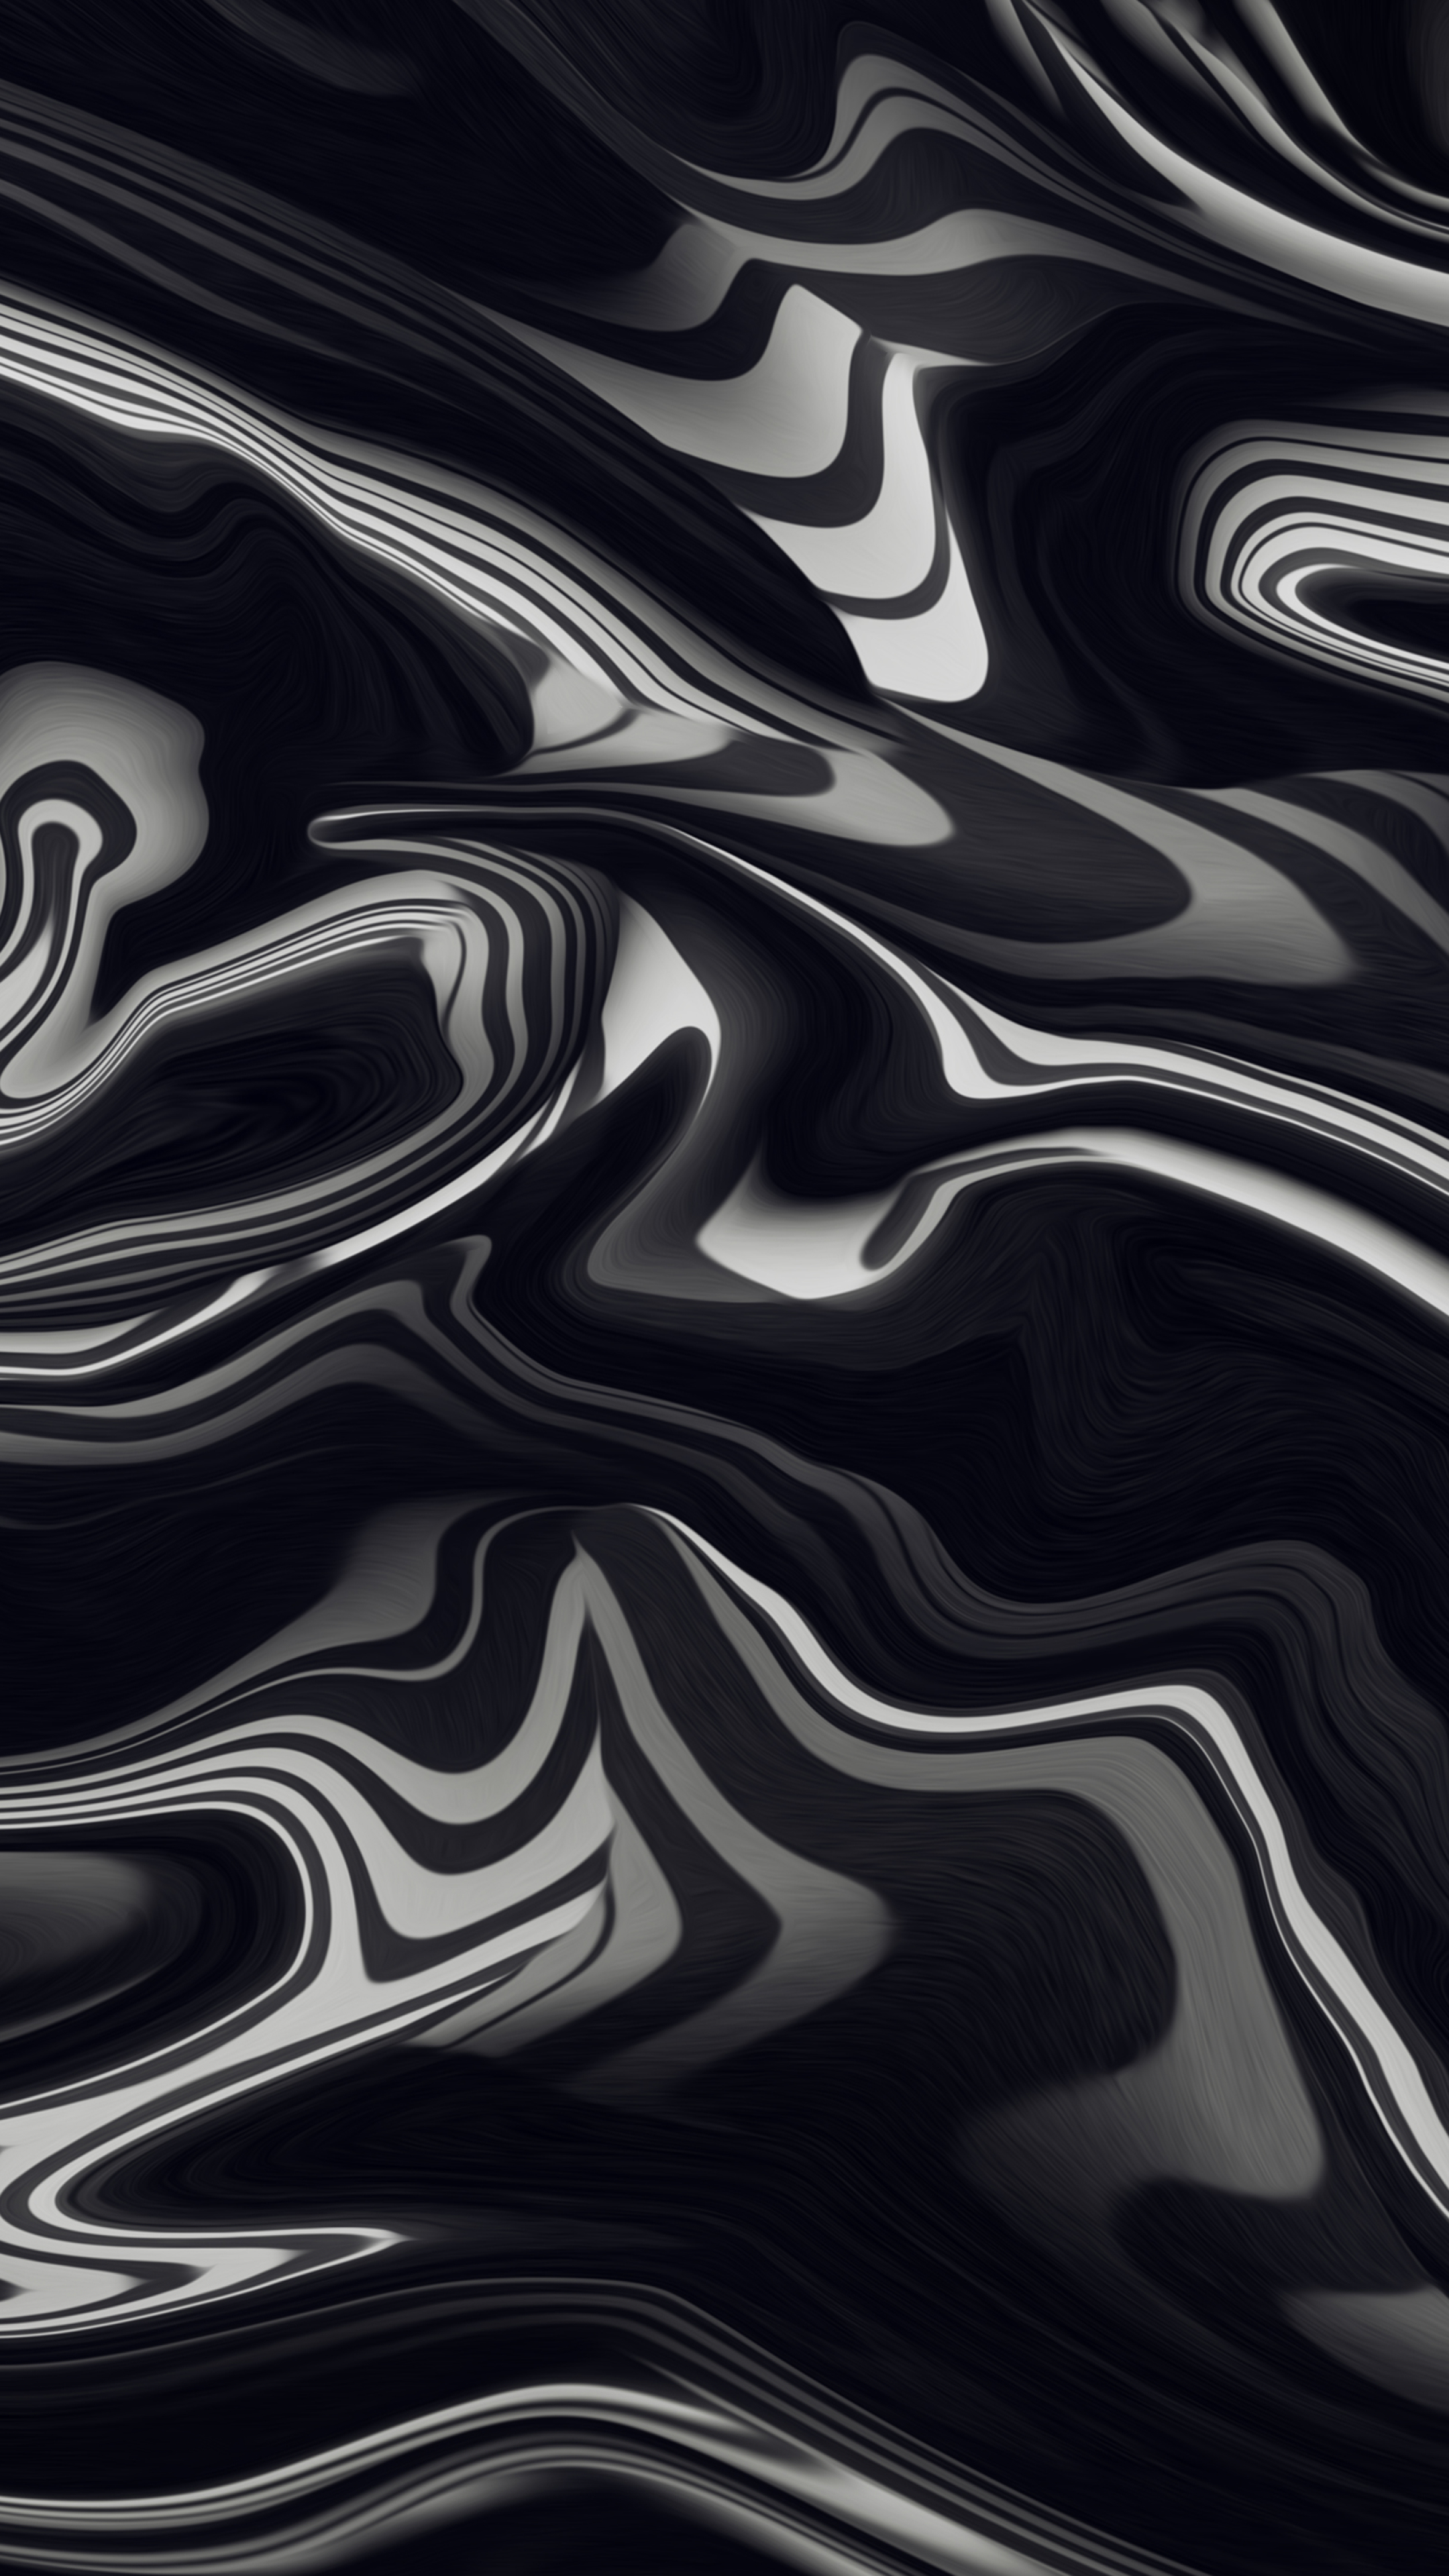 2160x3840 Black Color Liquid 4k Sony Xperia X Xz Z5 Premium Wallpaper Hd Abstract 4k Wallpapers Images Photos And Background Wallpapers Den